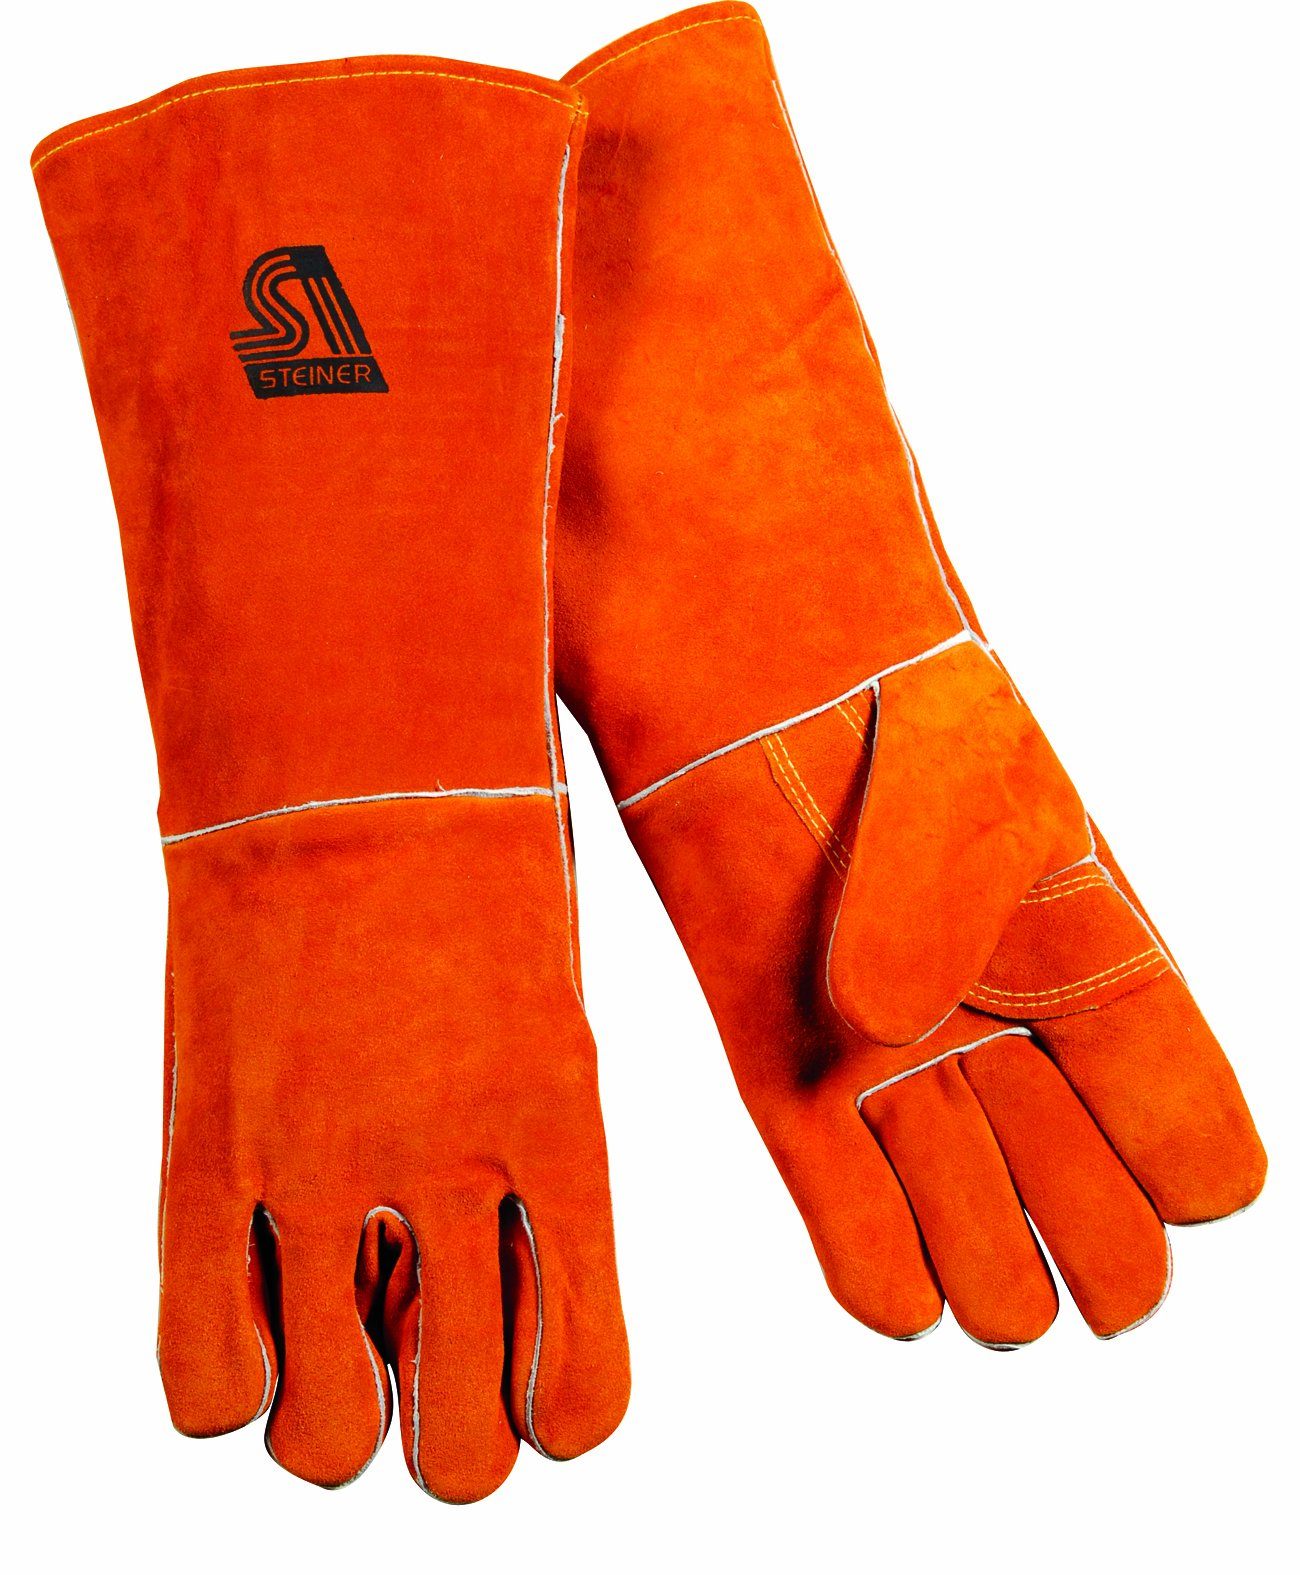 Steiner 21918-X Welding Gloves, Brown Y-Series 18-Inch Length Shoulder Split Cowhide, Foam Lined, Extra Large